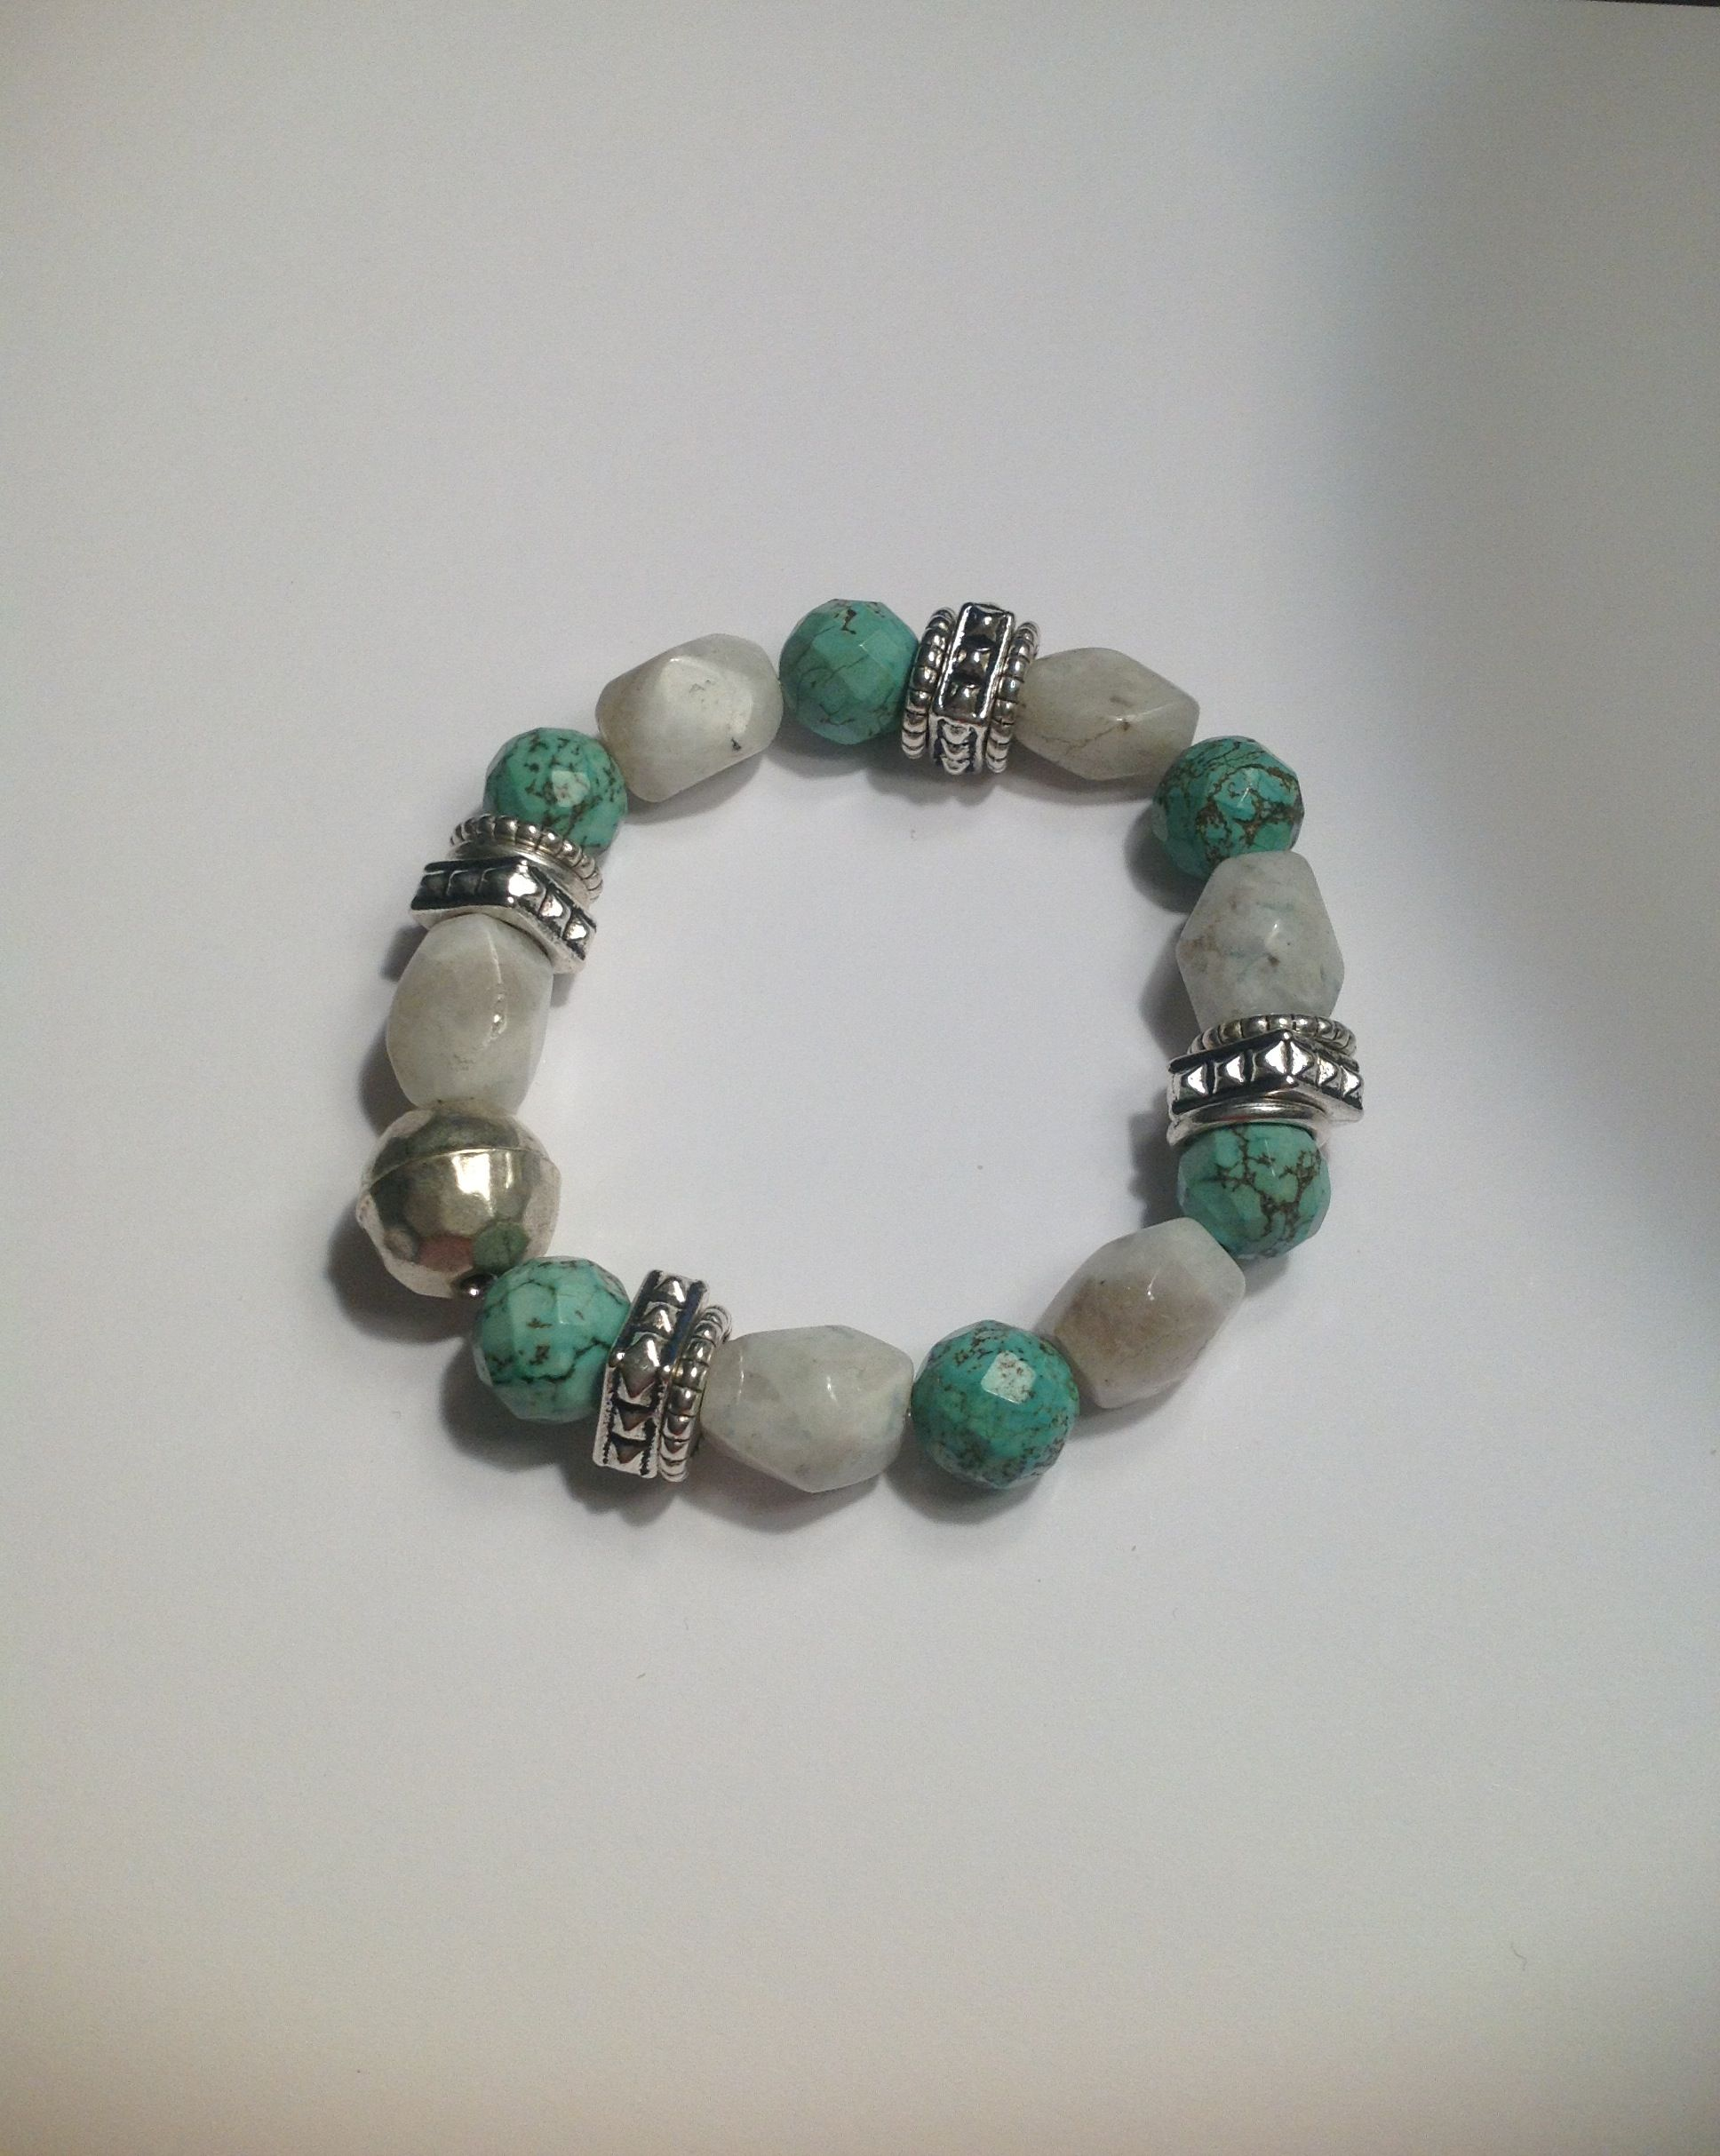 Mixture of clear white beads accented with silver toned beads and beautiful turquoise beads.  Measures approximately 7 1/4 inches